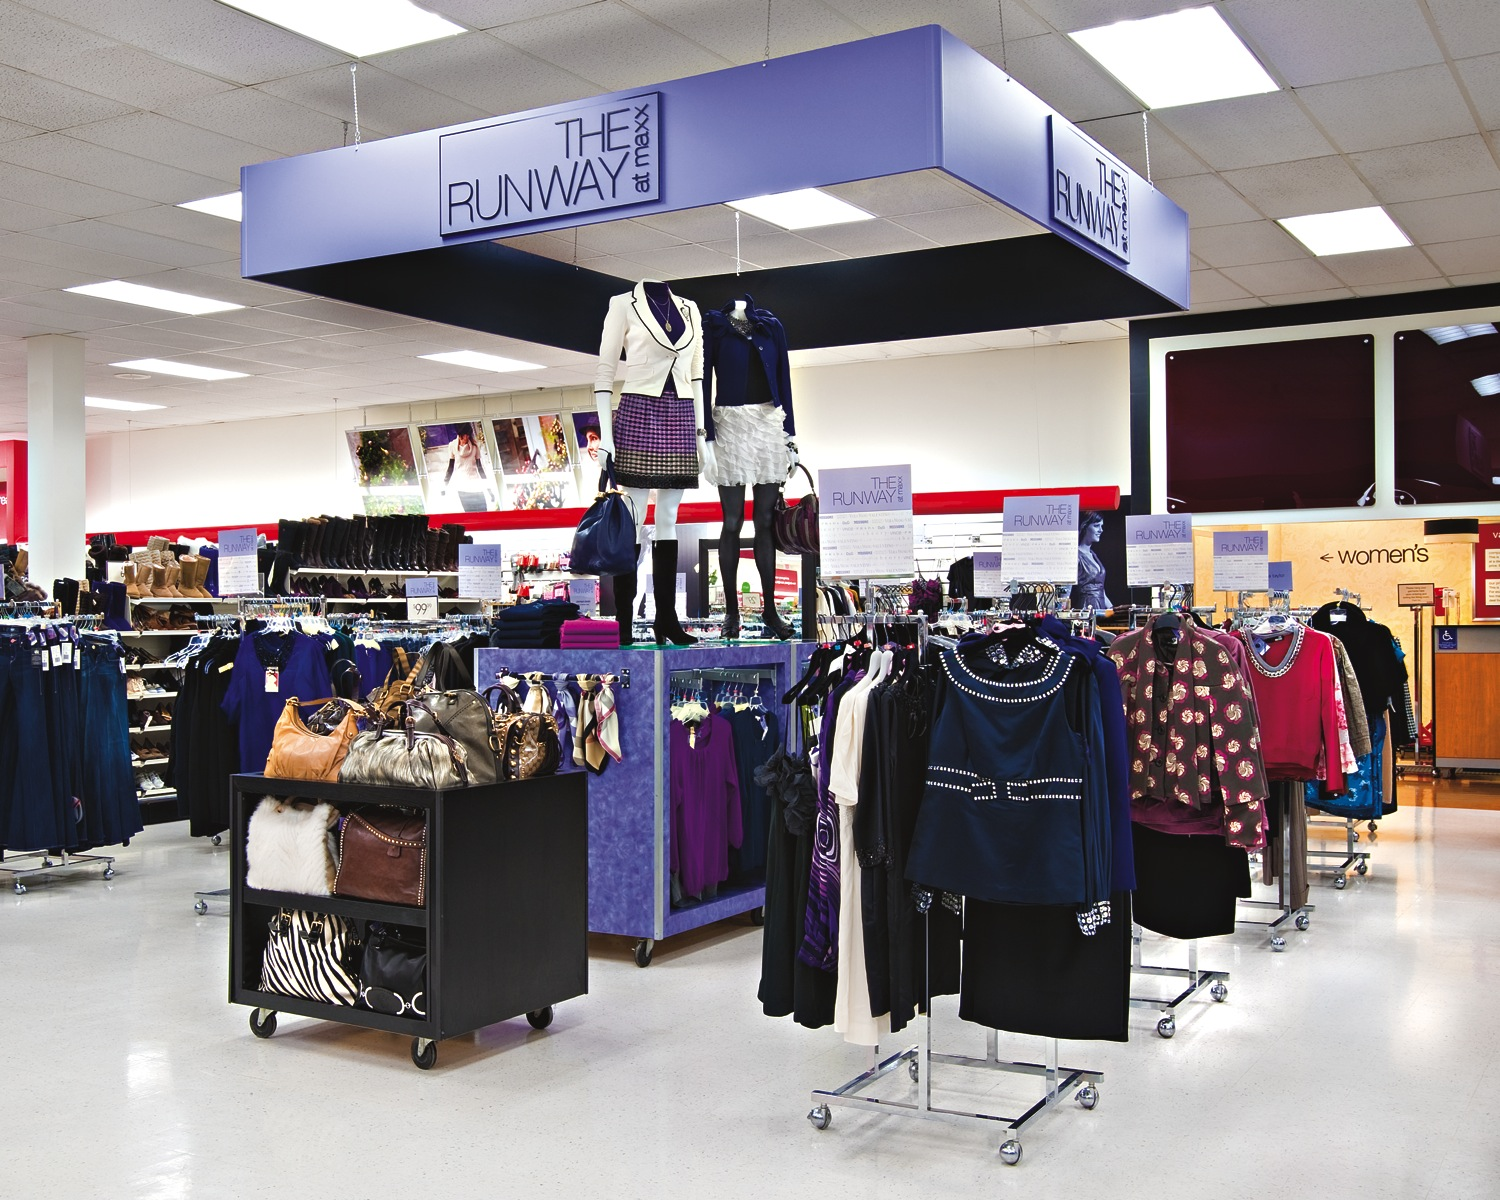 TJ Maxx in Columbus, GA. Find the top-rated outlet stores in the Columbus area, including our online phone book of the business hours and locations of TJ Maxx near Columbus, GA. TJ Maxx Listings. TJ Maxx - Cross Country Plaza. Macon Rd Store A, Columbus, GA ()